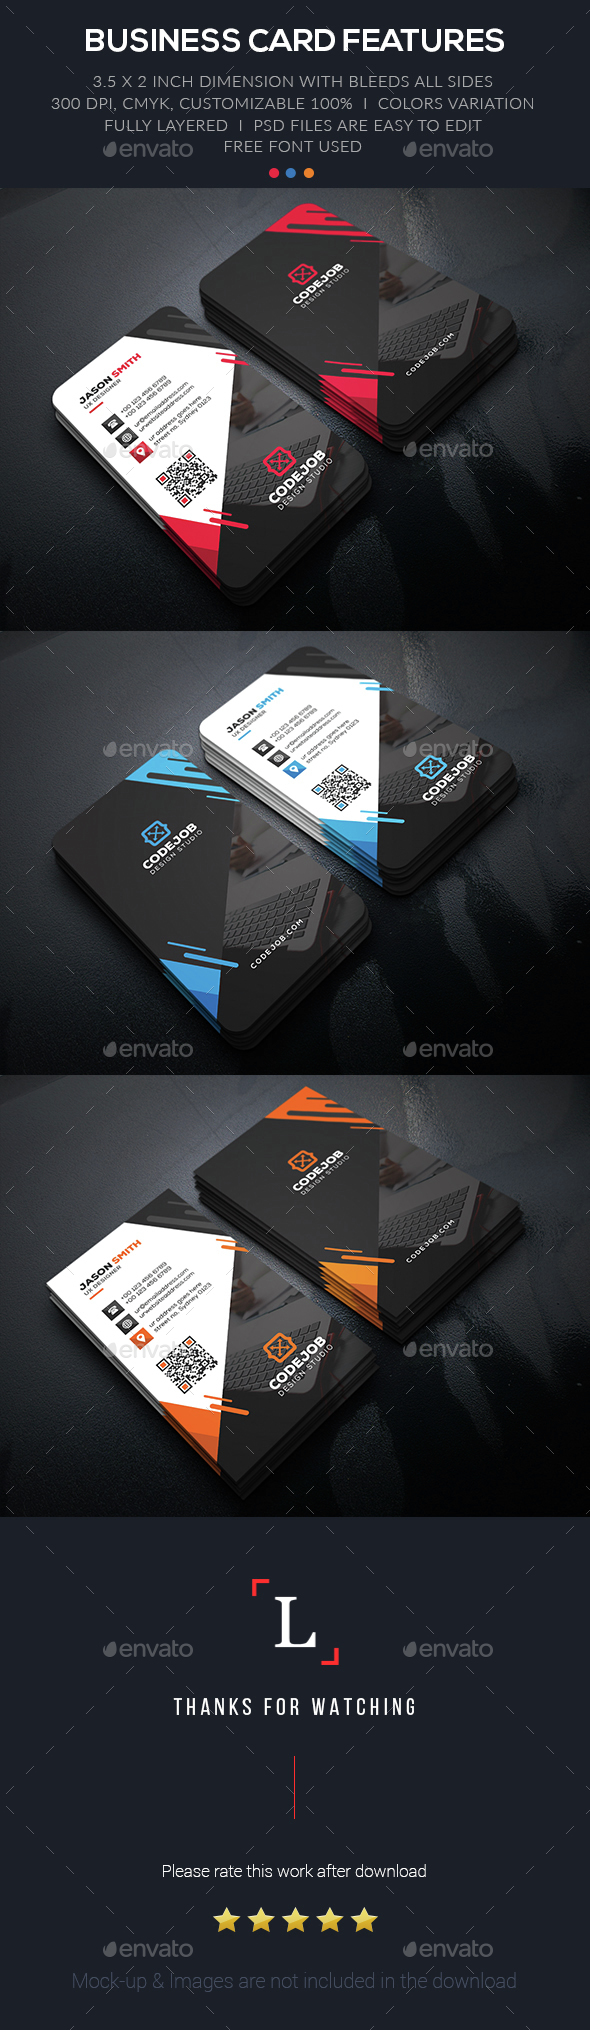 Graphic Corporate Business Card - Business Cards Print Templates